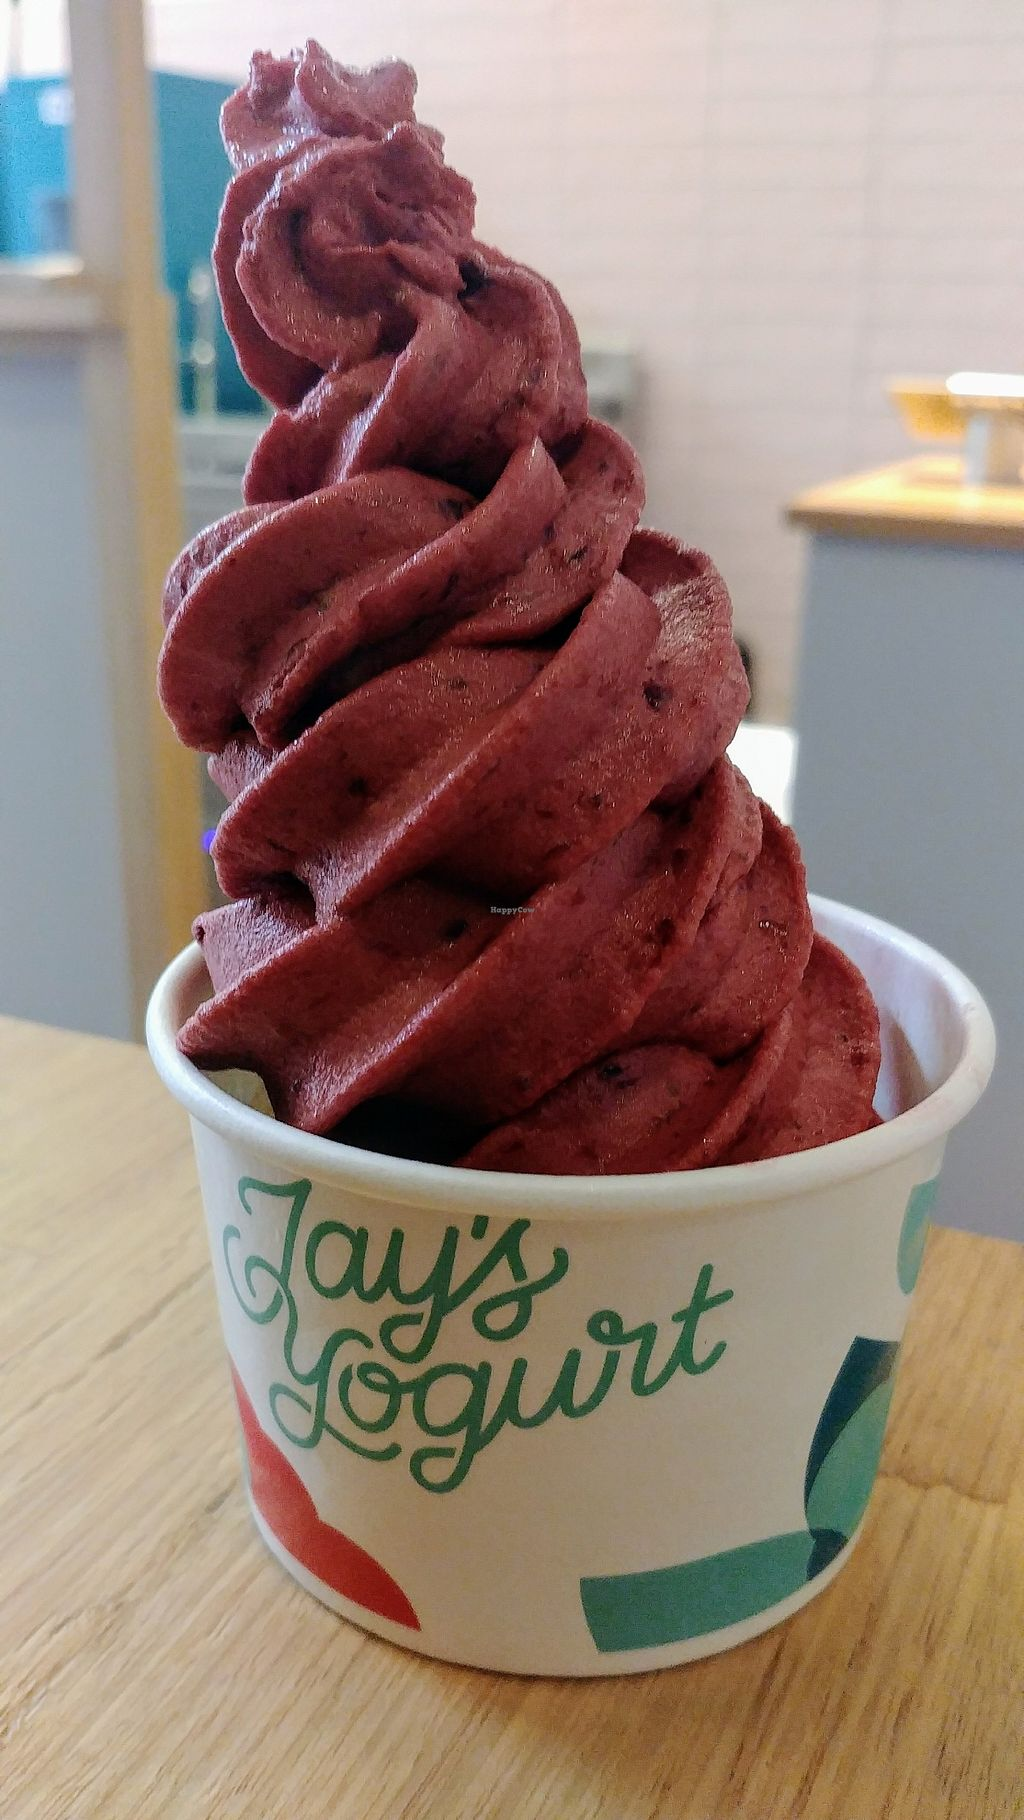 """Photo of Jay's Yogurt  by <a href=""""/members/profile/karlaess"""">karlaess</a> <br/>Nicecream blend <br/> April 10, 2018  - <a href='/contact/abuse/image/116878/383195'>Report</a>"""